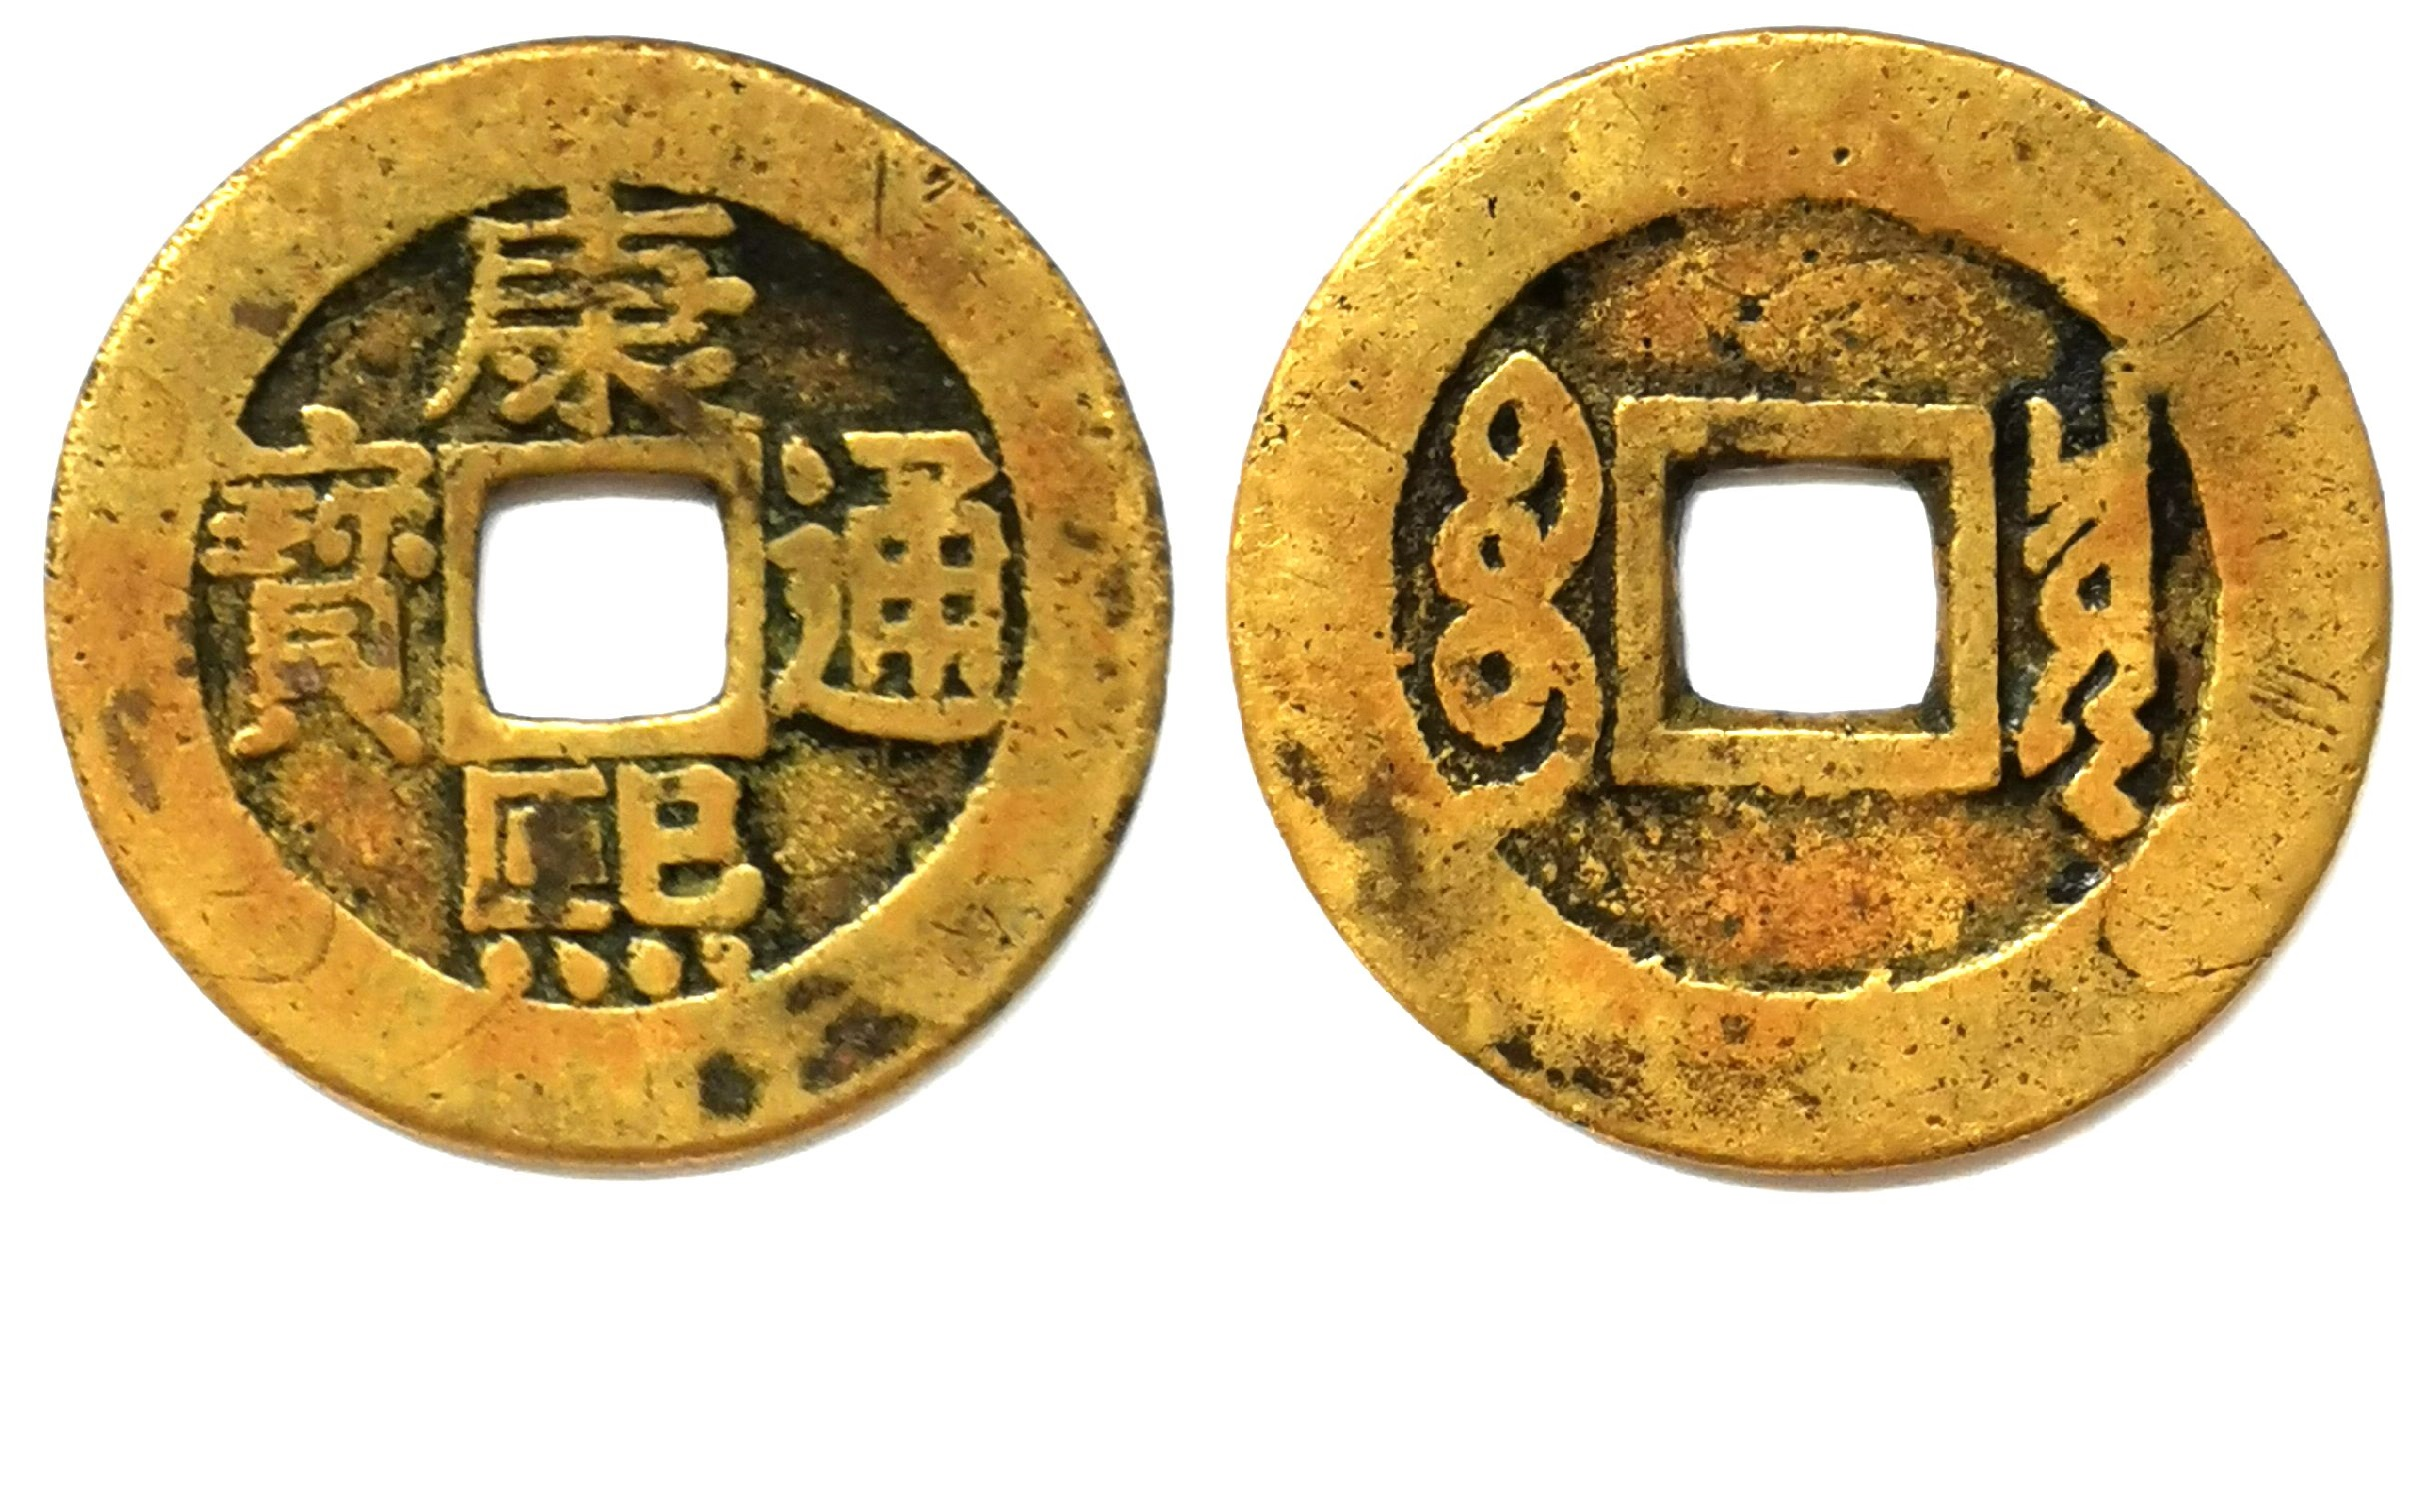 K4410, Kang-Xi Tong-Bao Coin (Lo-han Cash, Rohan Money), China 1713, Scarce